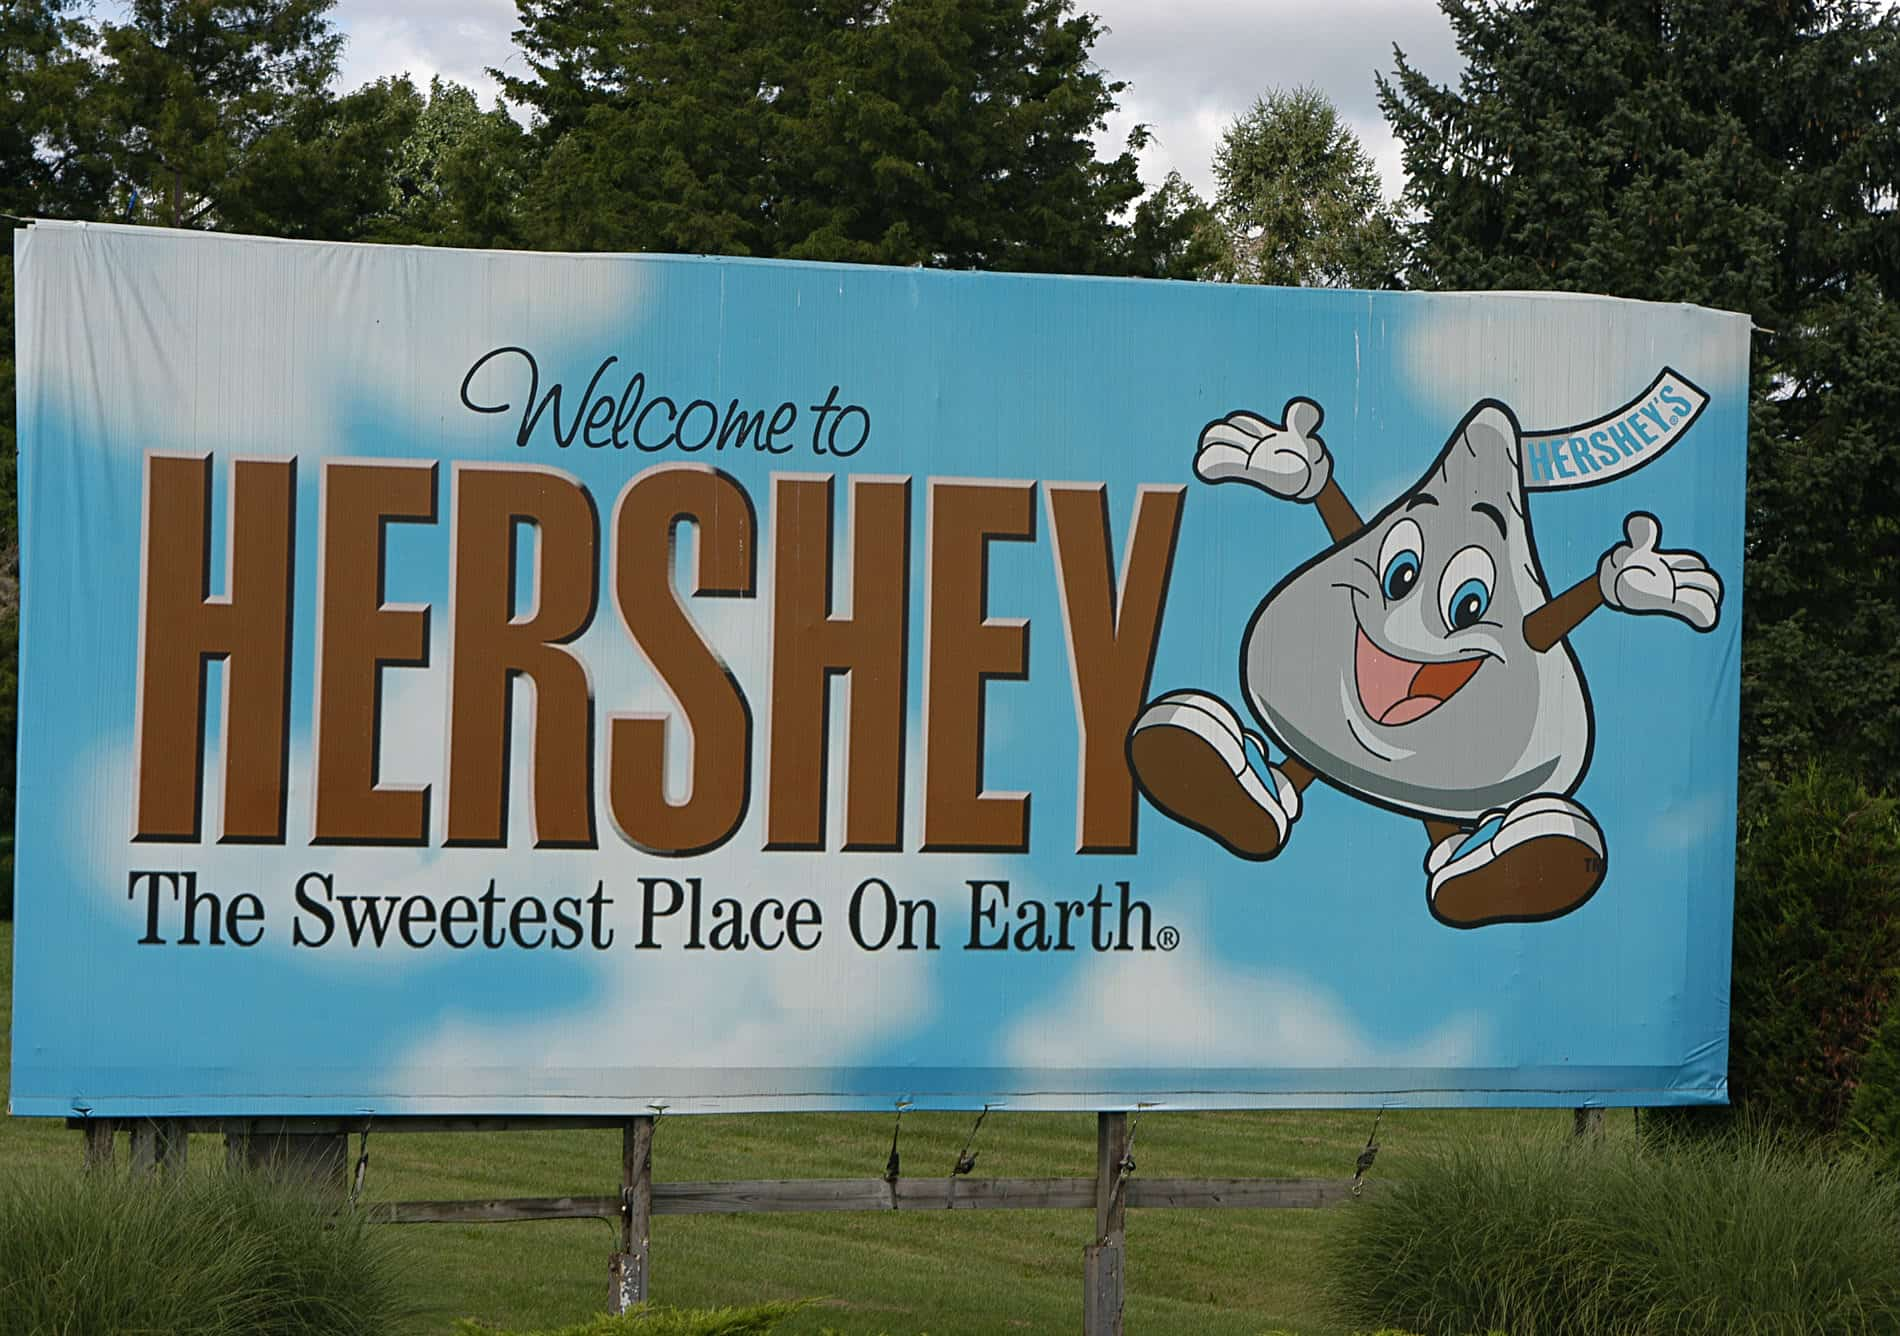 Picture of the Hershey welcome poster.